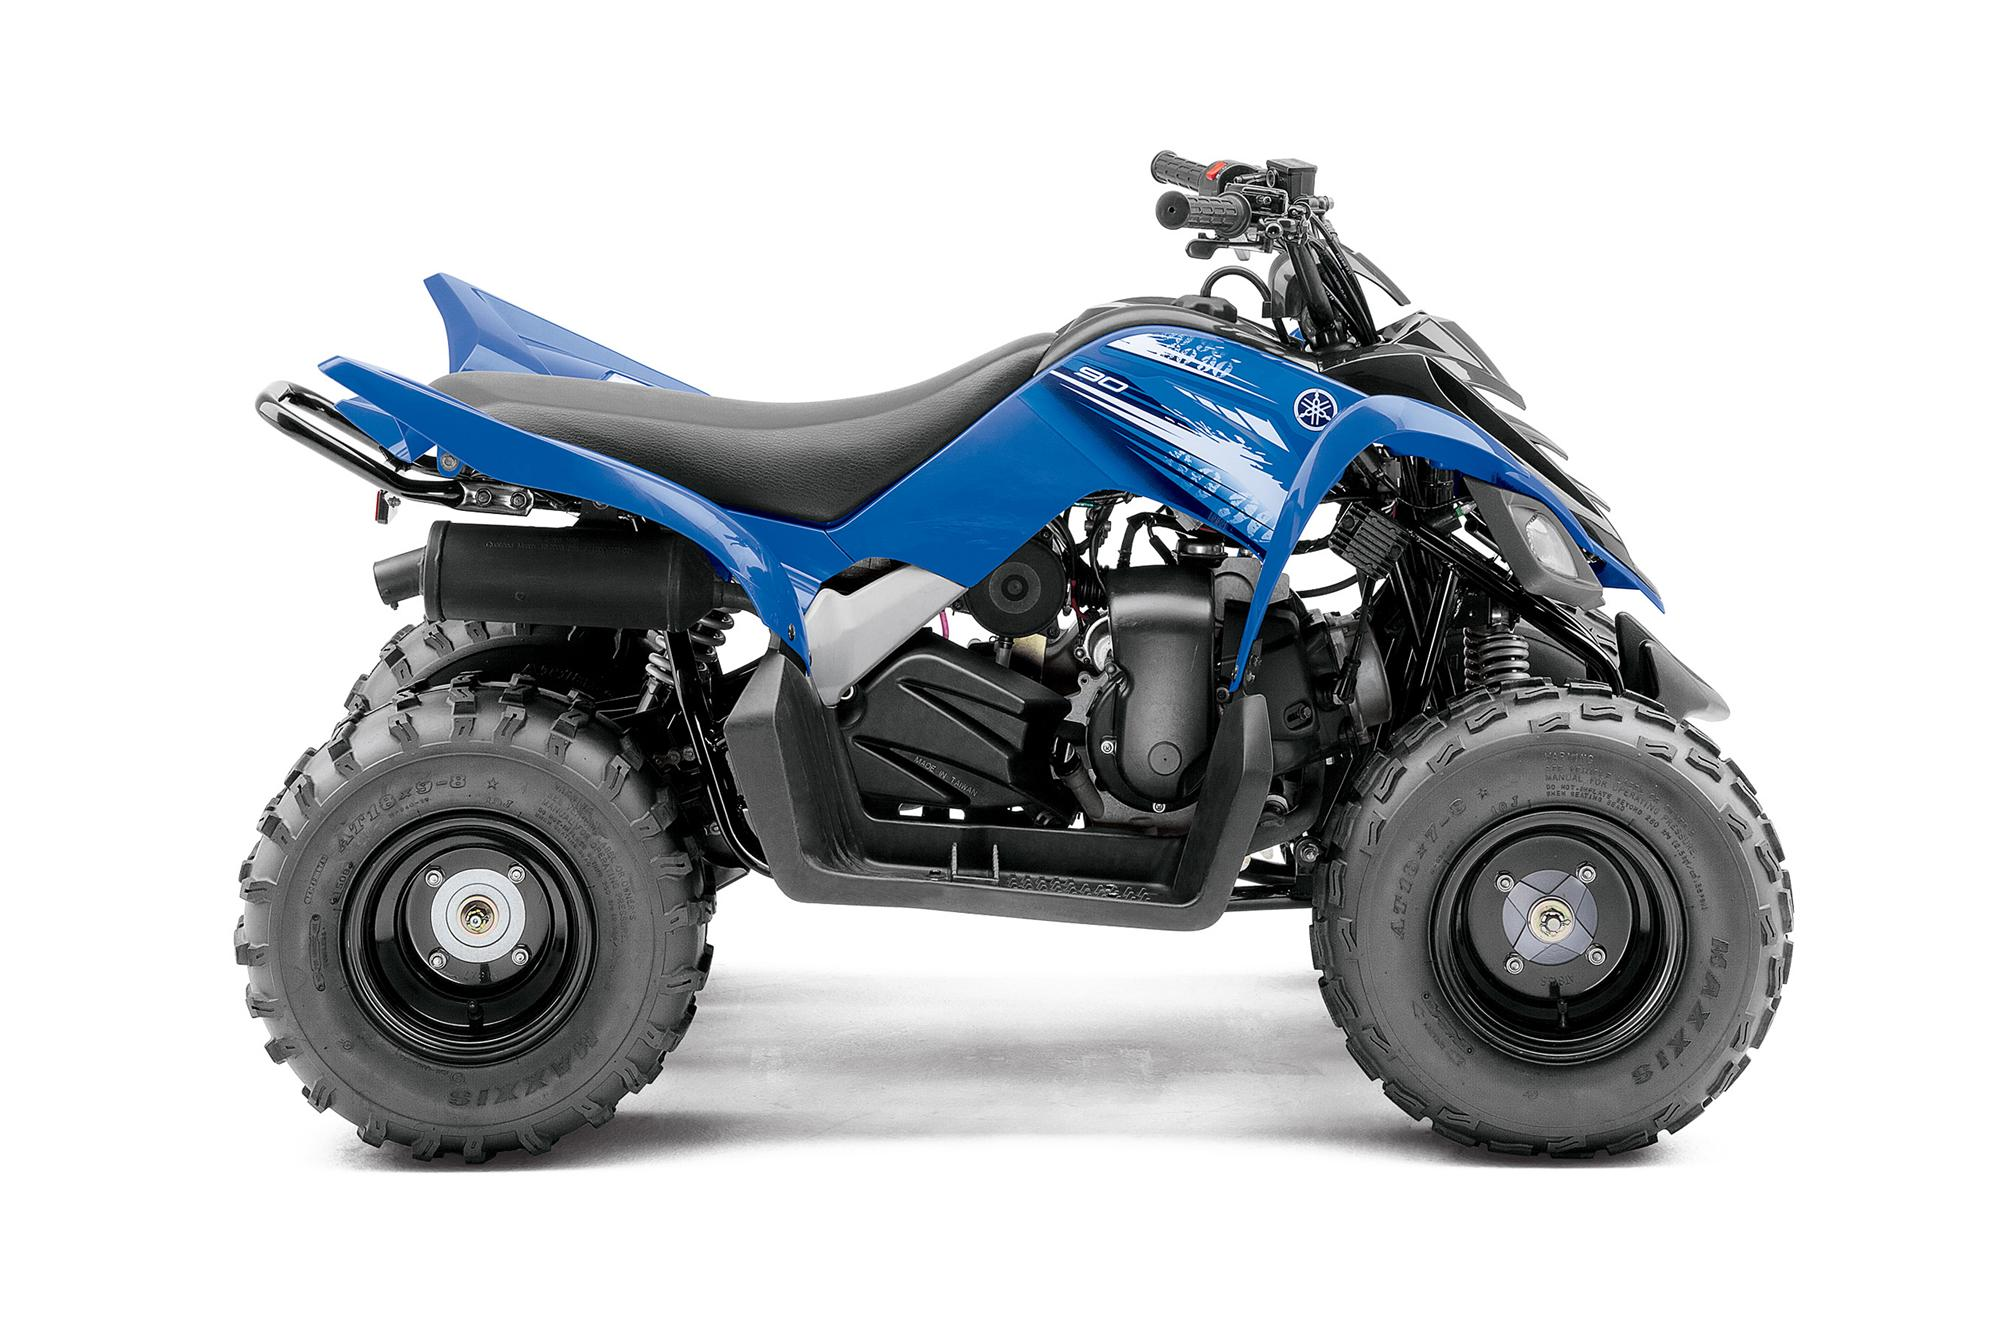 2011 Yamaha Raptor 700 Owners Manual: Free Download ... on